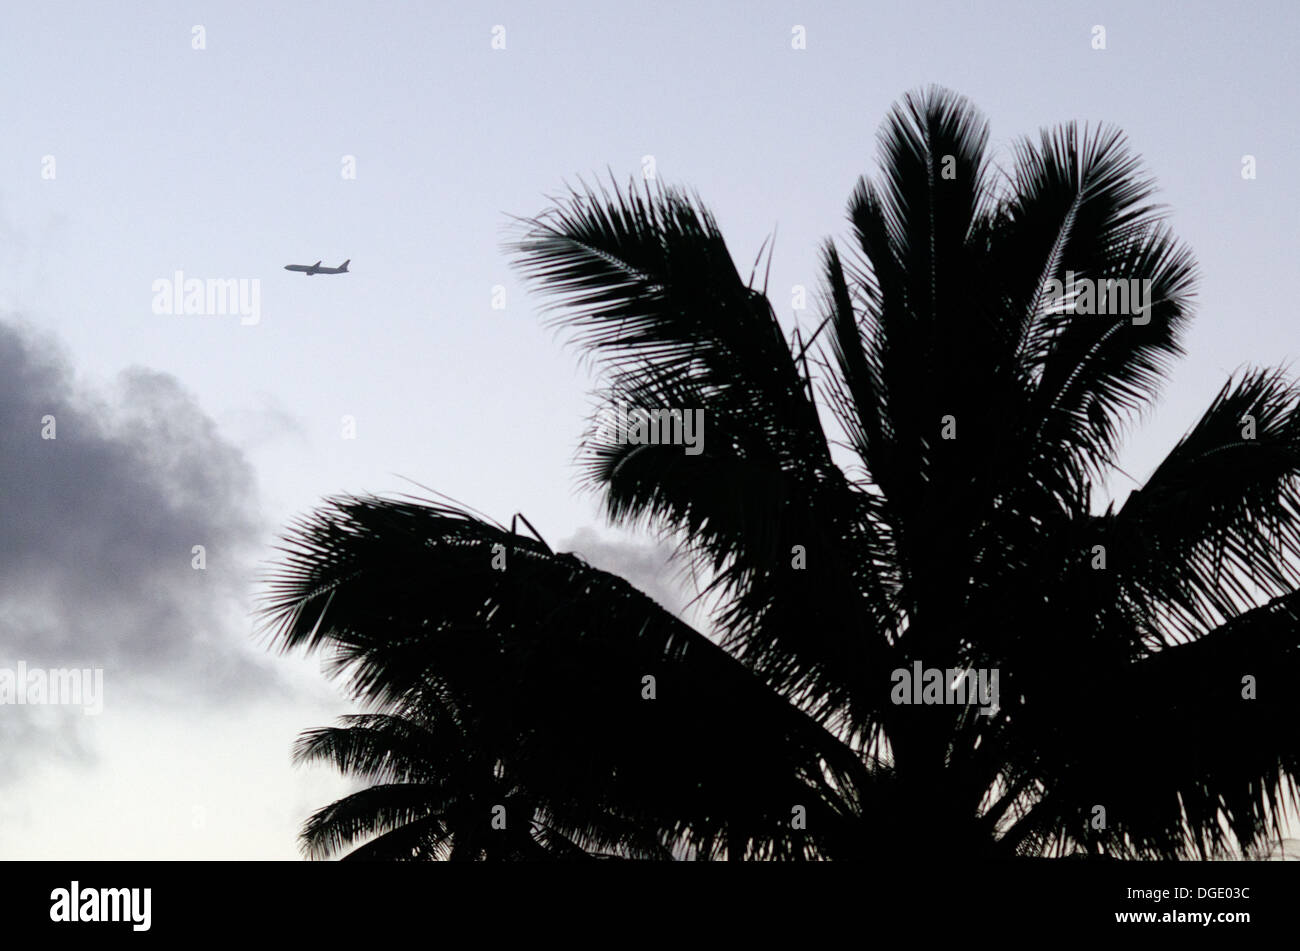 Silhouette of a coconut palm tree and a Jet plane departing / arriving from / tropical island during sunset / sunrise. - Stock Image